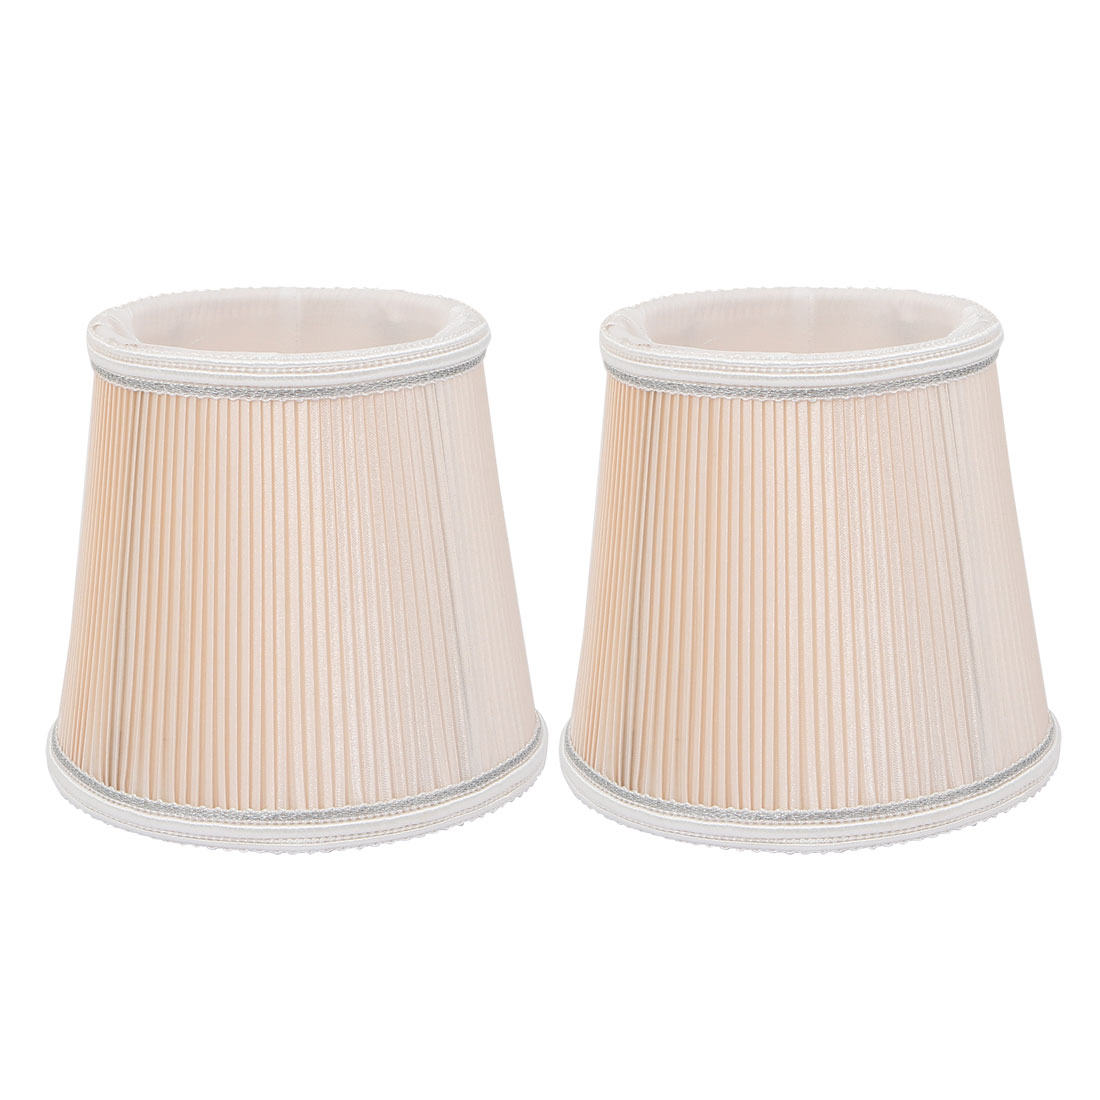 2pcs Wall Shade Light Shade Chandelier Clip-On Lampshade Beige Fabric-Covered by